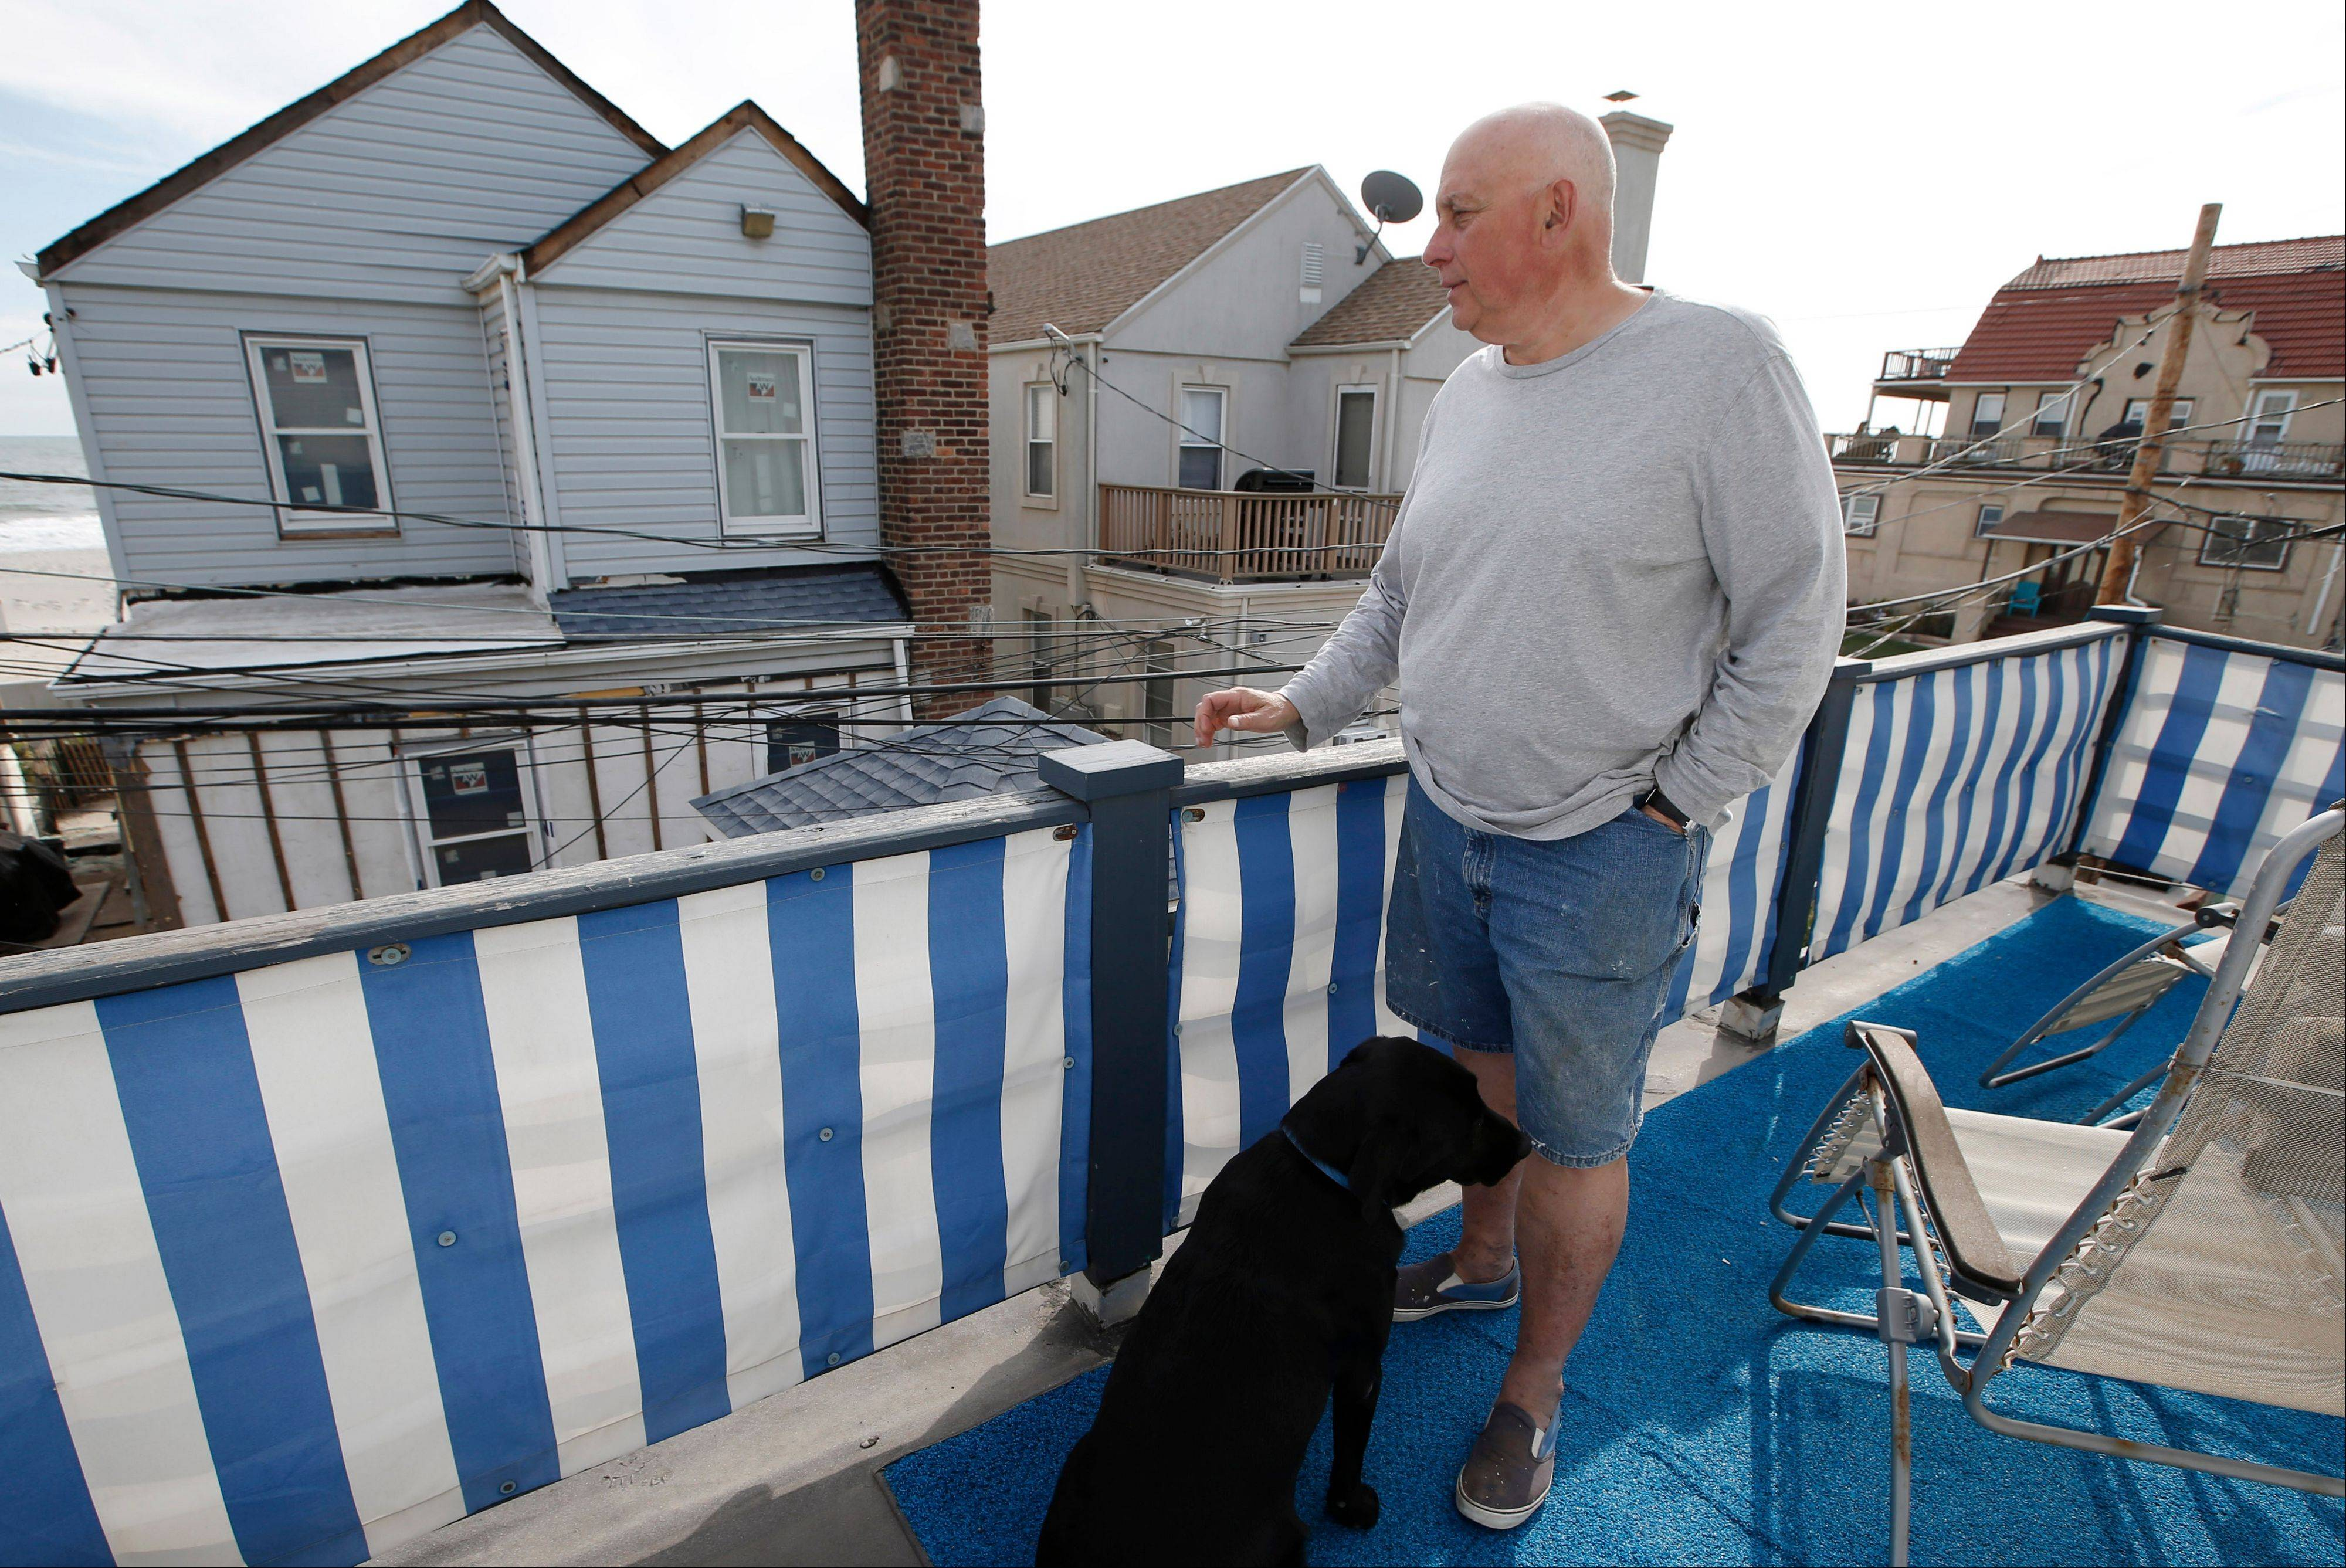 Larry Racioppo, a retired staff photographer for the New York City's Housing and Preservation Department, stands on a balcony at his home just 20 feet off the ocean in the Belle Harbor section of the Rockaways in New York. Racioppo created a 22-page photo album, constructed of scrap plywood and orange plastic construction fencing, documenting his neighborhood beginning on the day of Superstorm Sandy and ending in early spring with portraits of workers repairing his flooded basement.